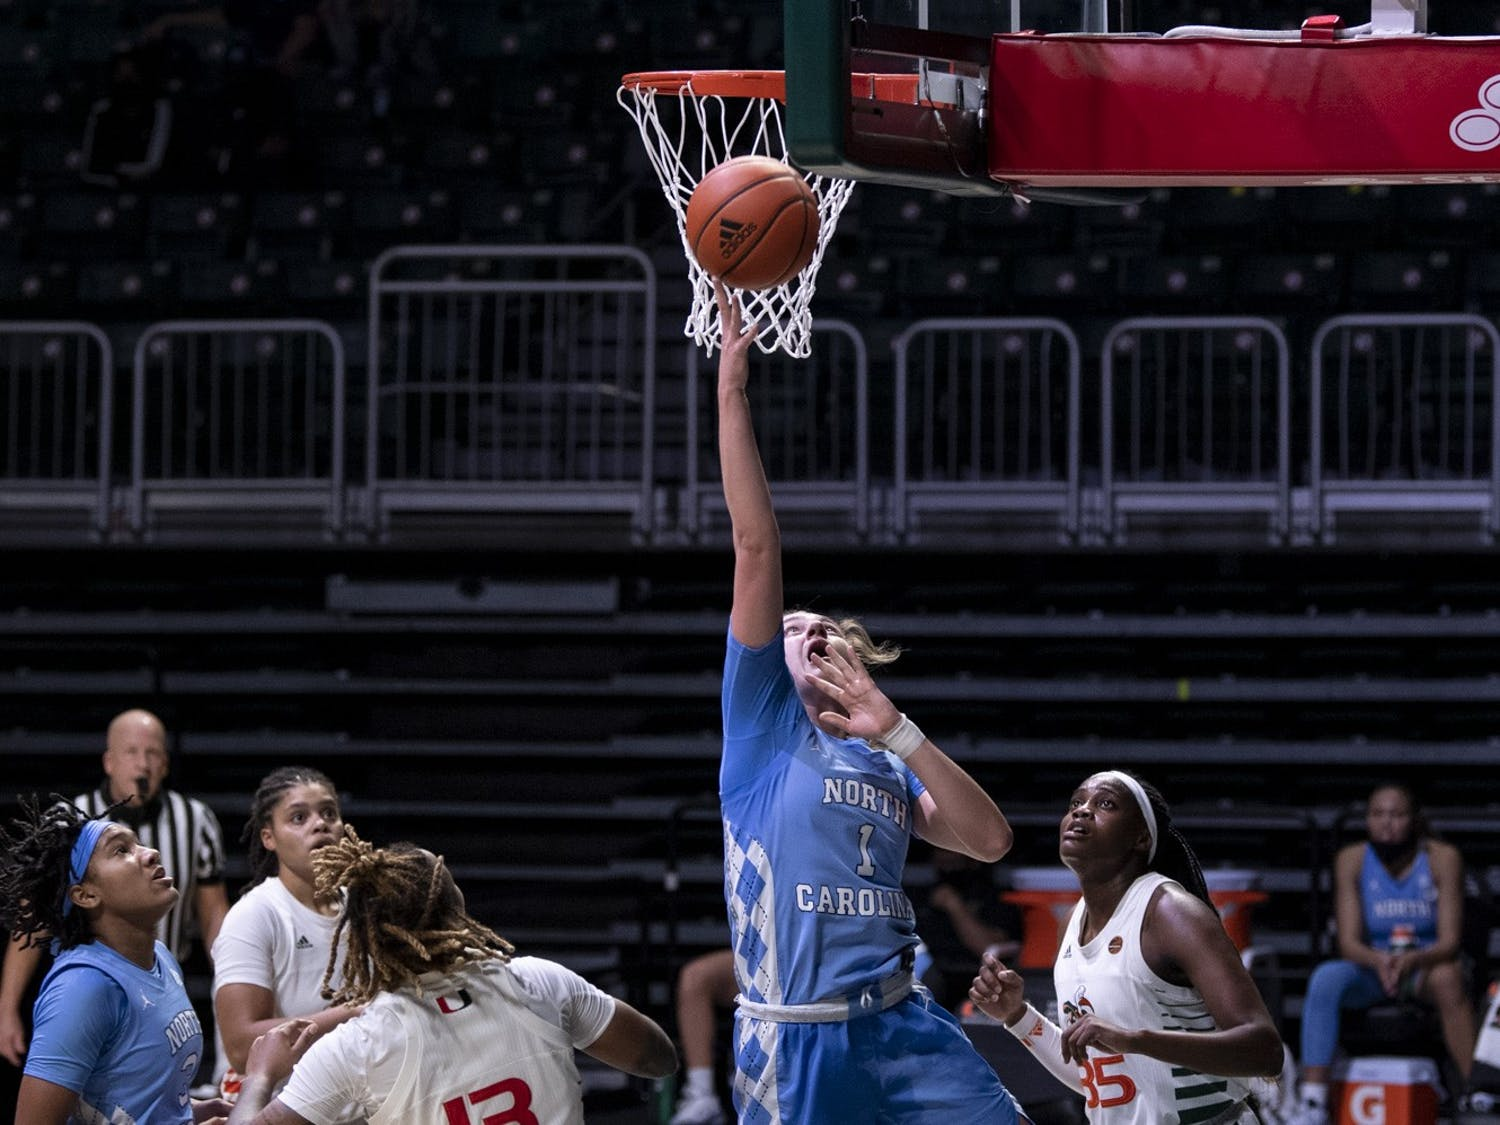 UNC first year guard Alyssa Utsby (1) attempts a layup during a game against The Miami Hurricanes at Watsco Center on December 14, 2020 in Coral Gables, FL. Photo by Kevin Ortiz/University of Miami Athletics